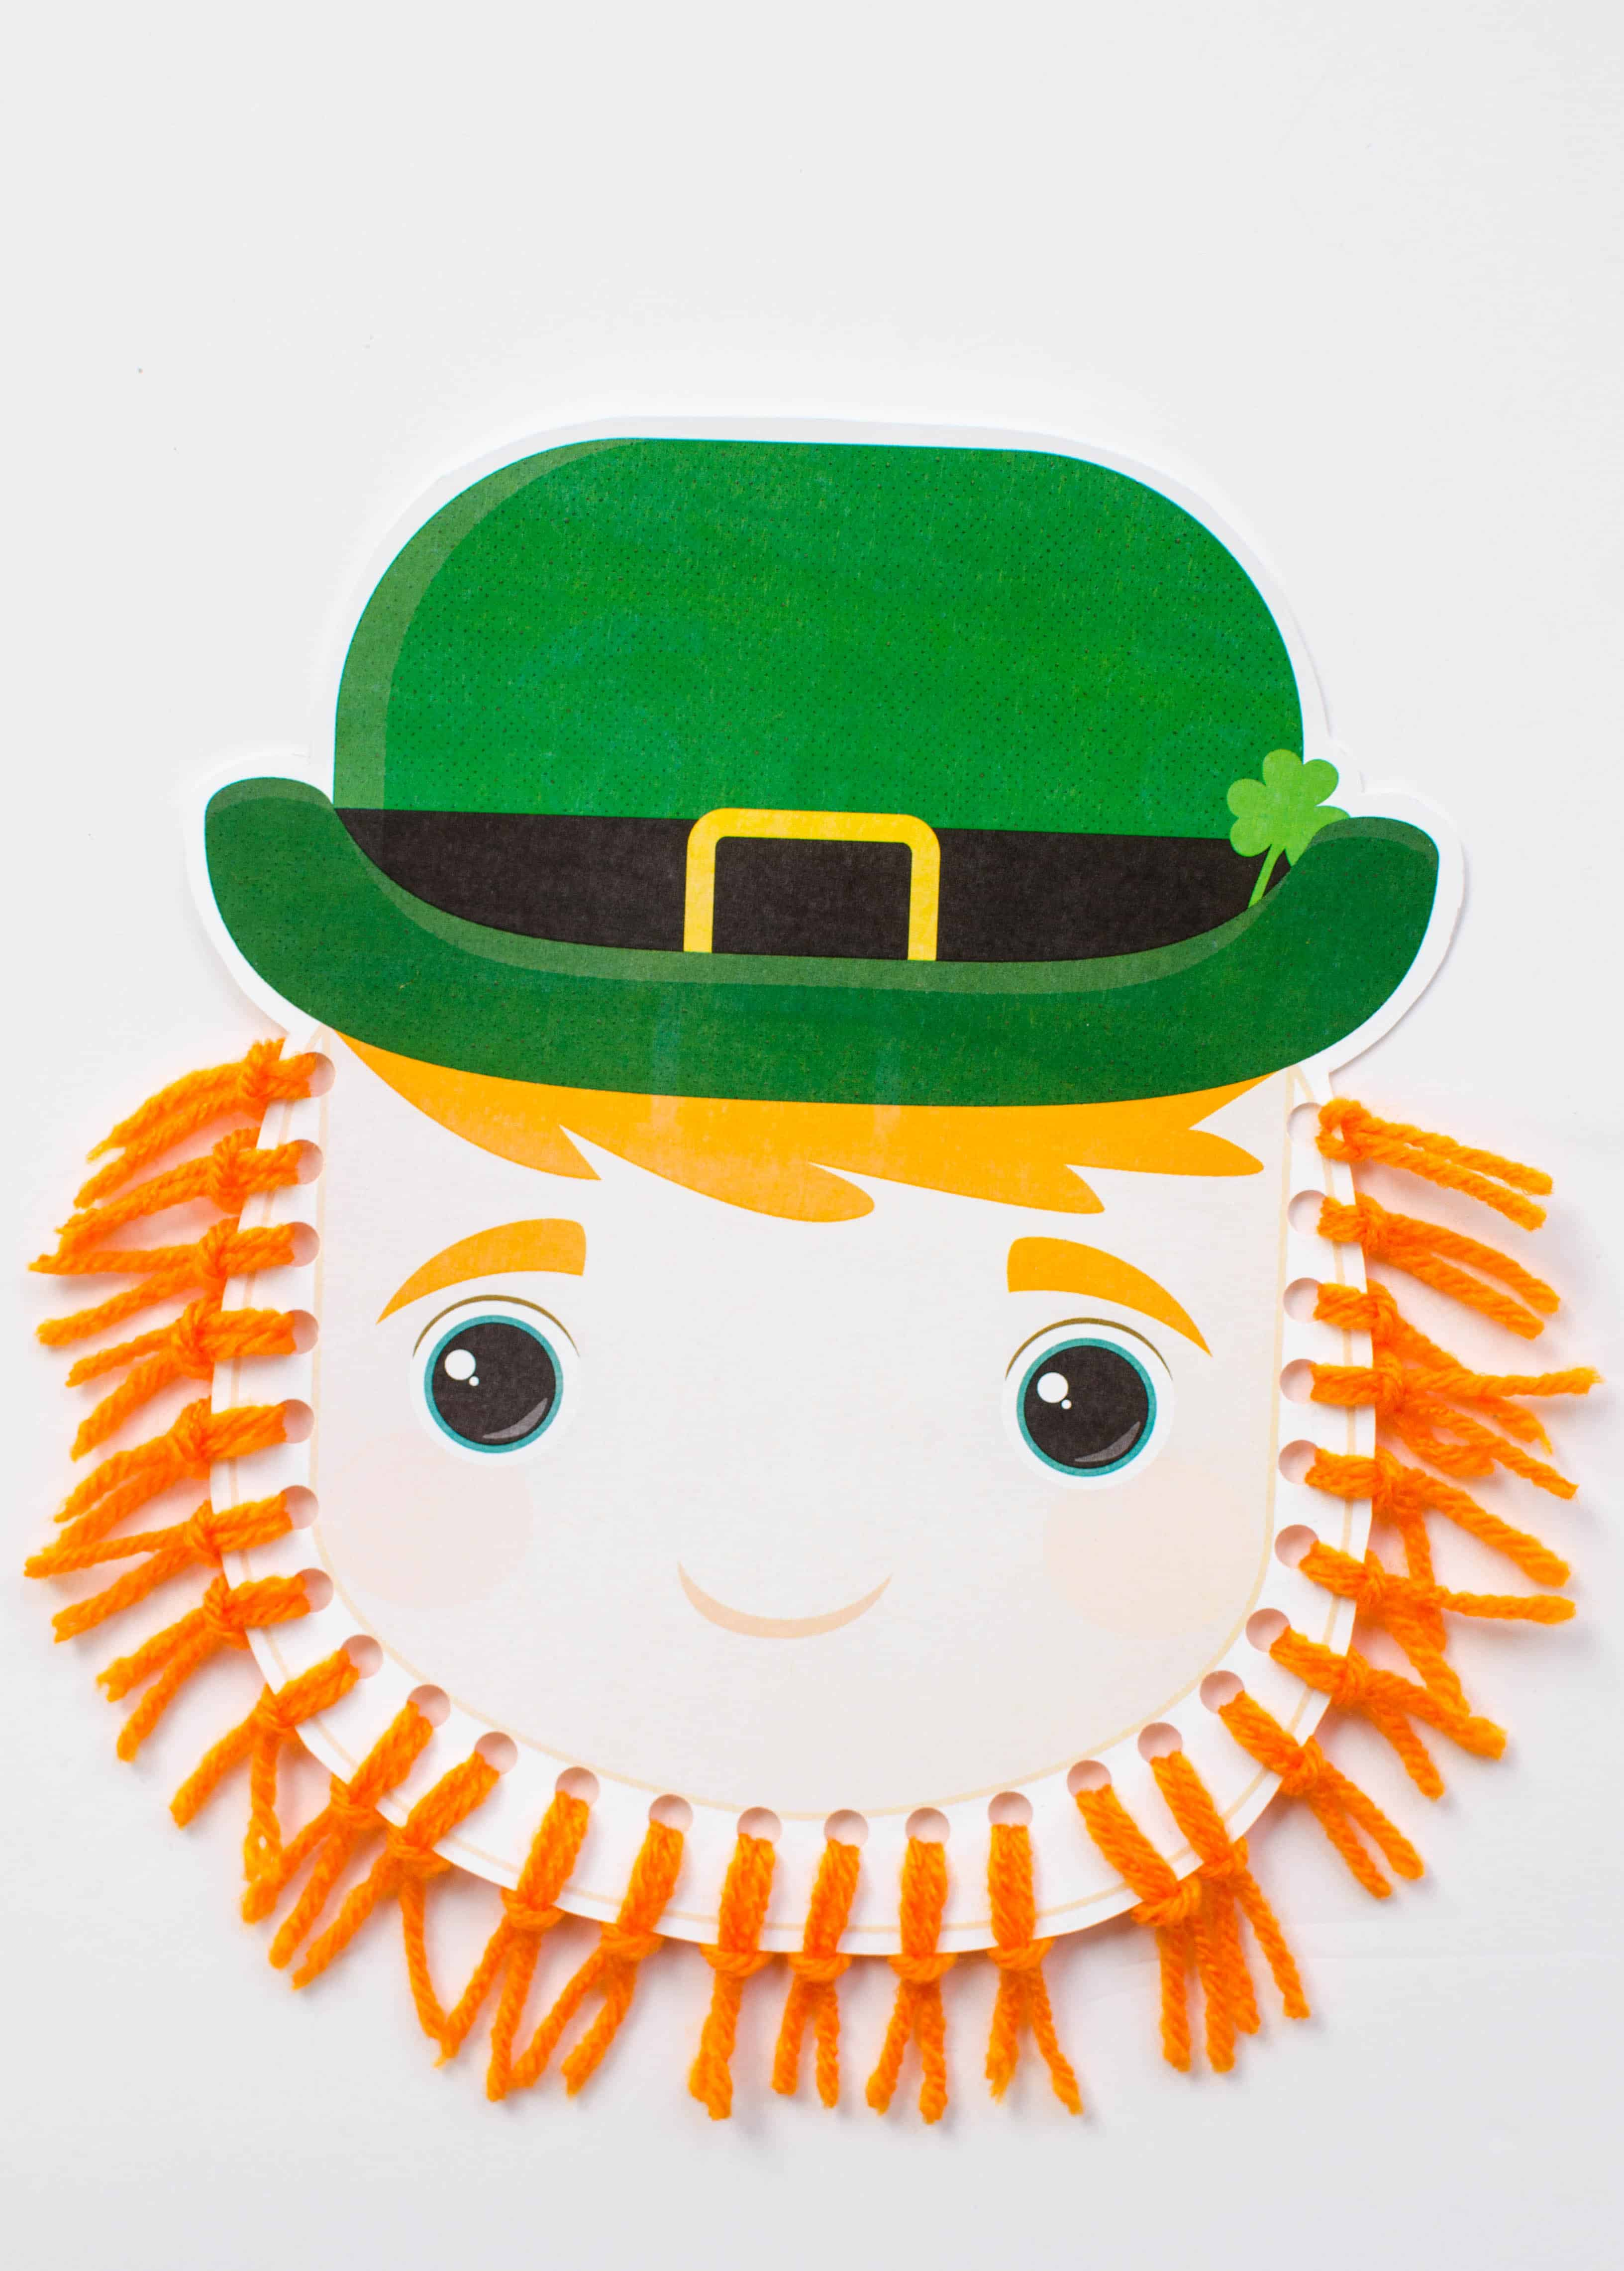 Grab some orange yarn and our free printable to make this easy St. Patrick's Day craft for kids.